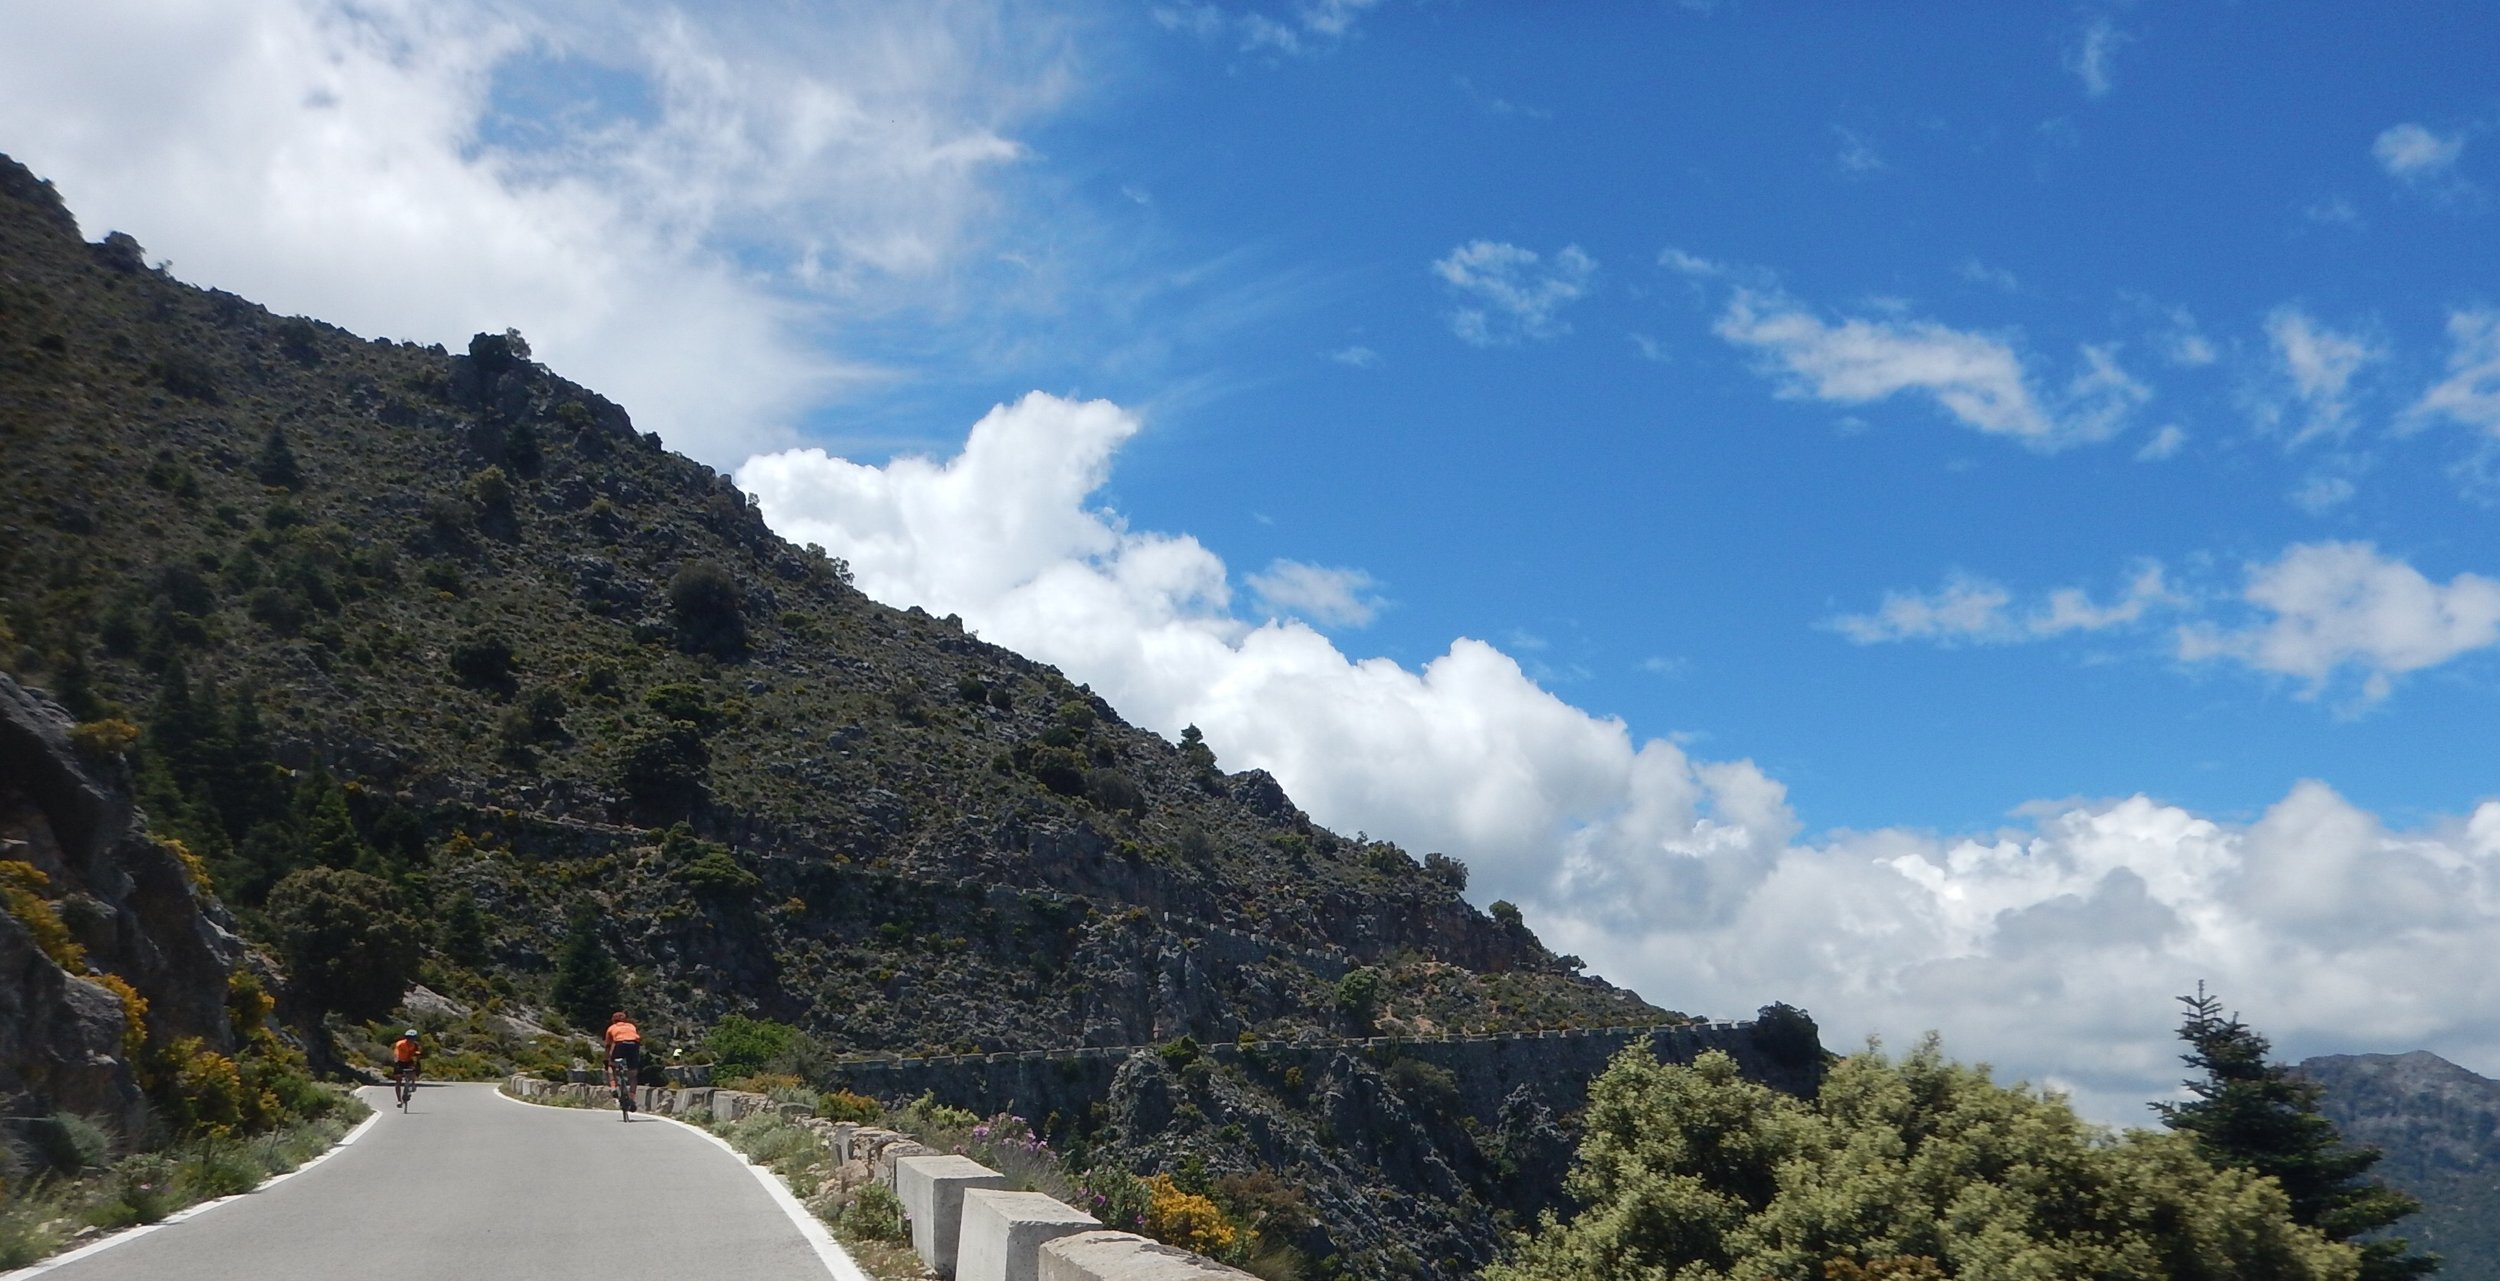 near Ronda in southern Spain, this road had many zig zags as it went up over the pass.